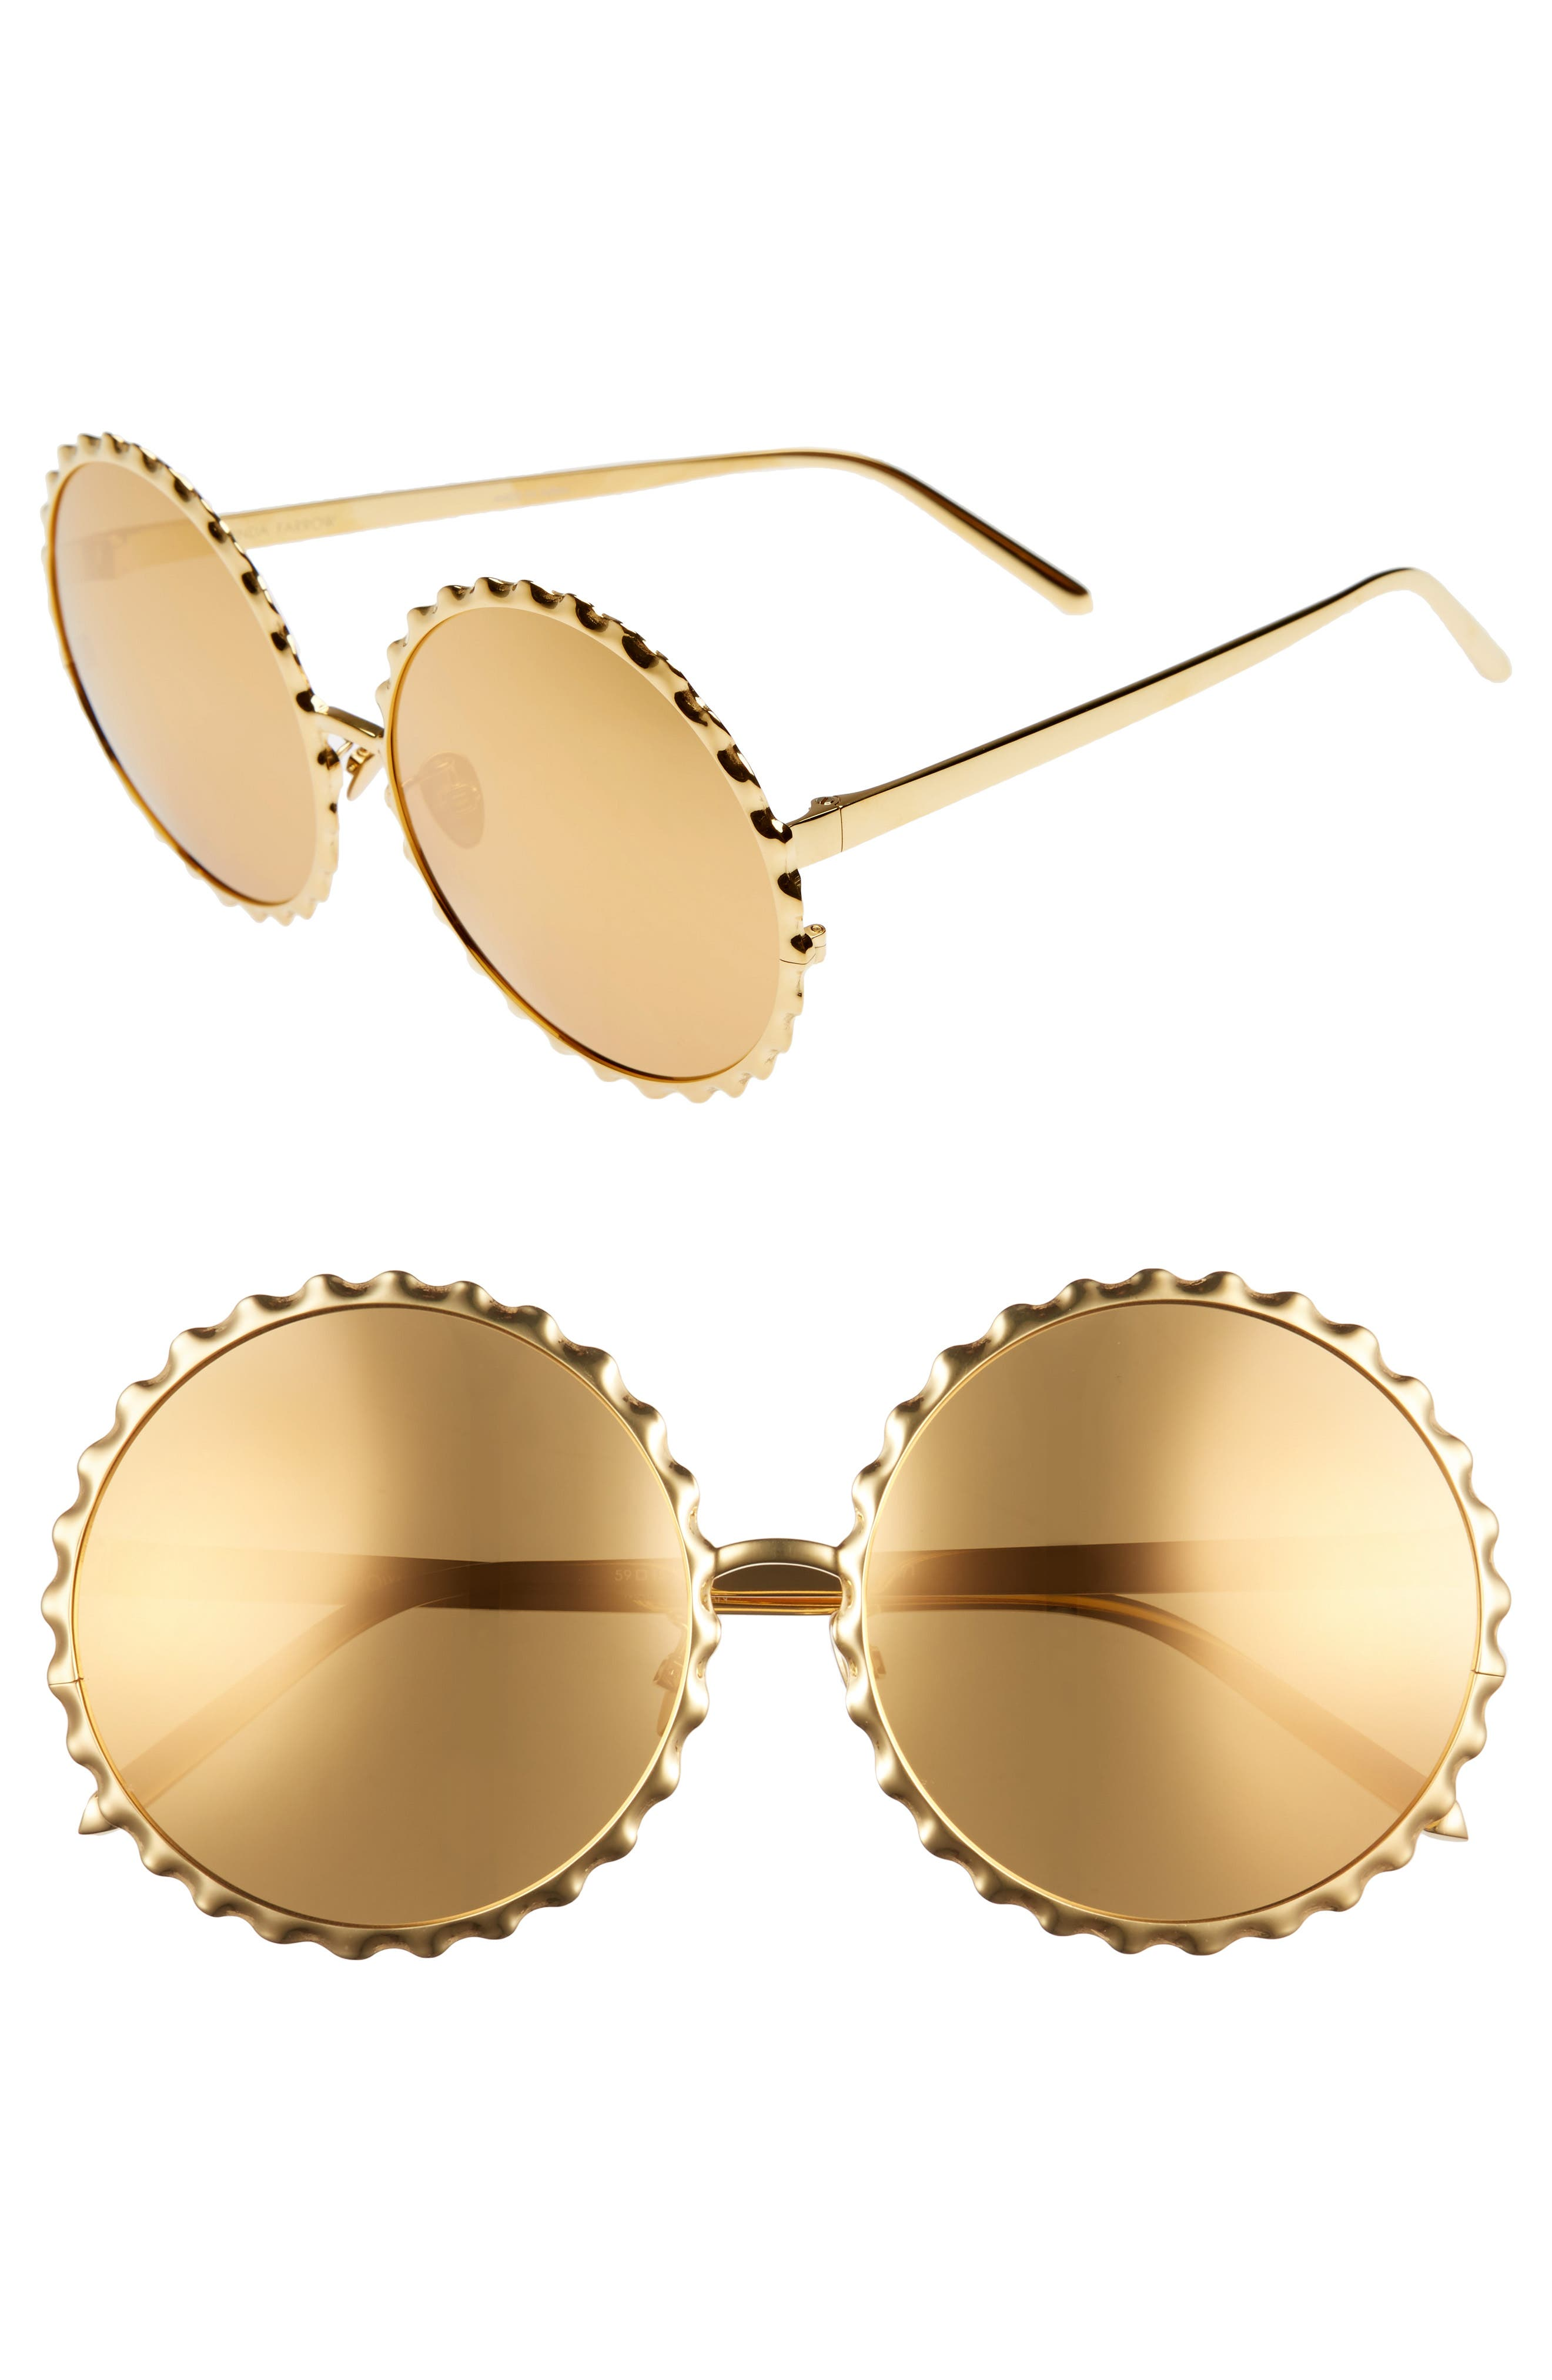 59mm Mirrored 18 Karat Gold Trim Round Sunglasses,                         Main,                         color, 710